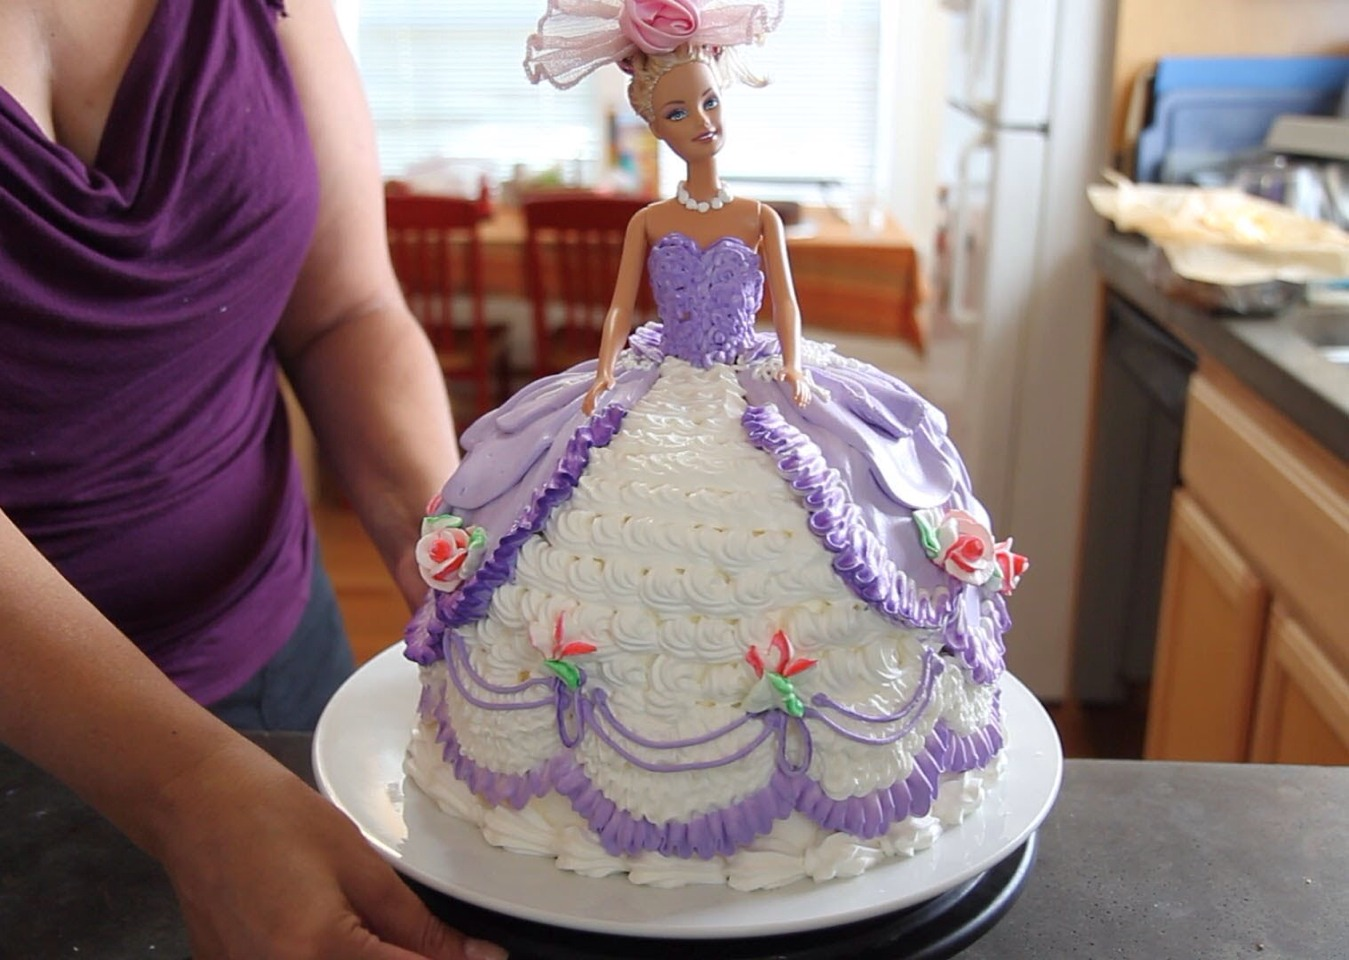 Flip it upside down and put the Barbie through it.  Ice the cake however you desire! Cute for children!!! And easy/low cost